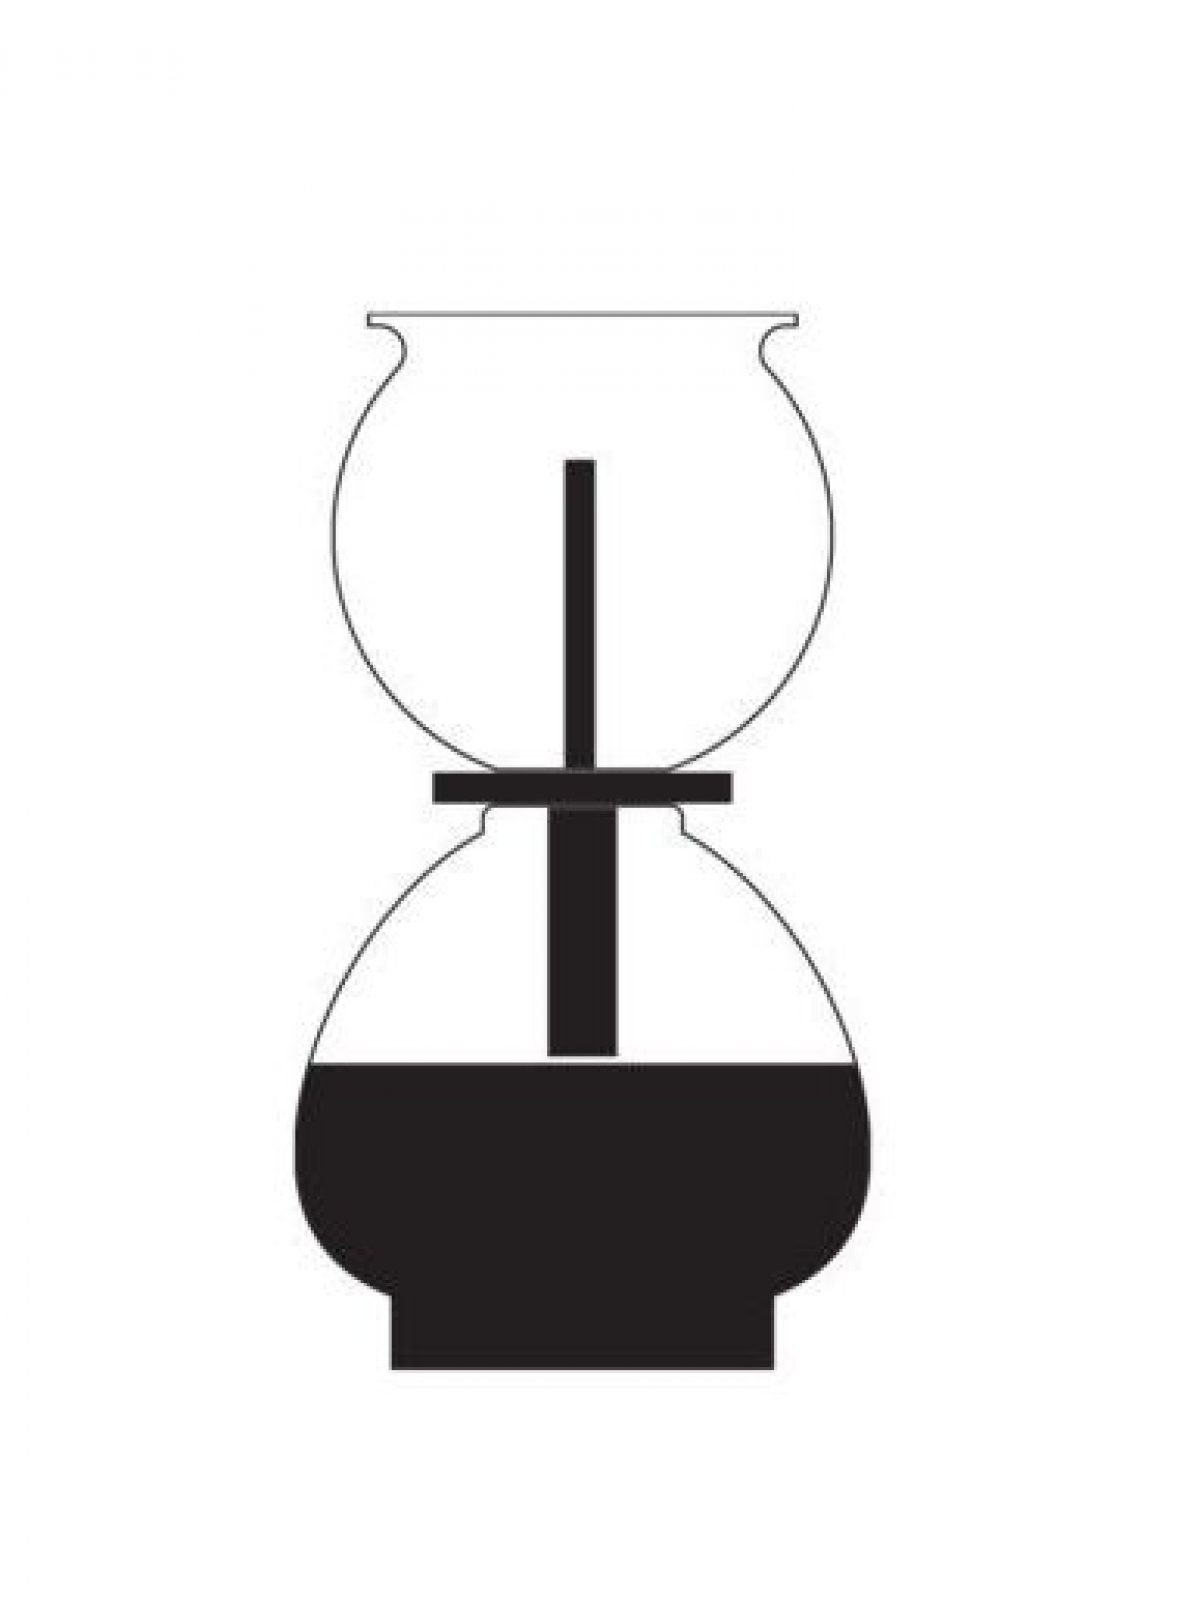 Siphon Silhouette